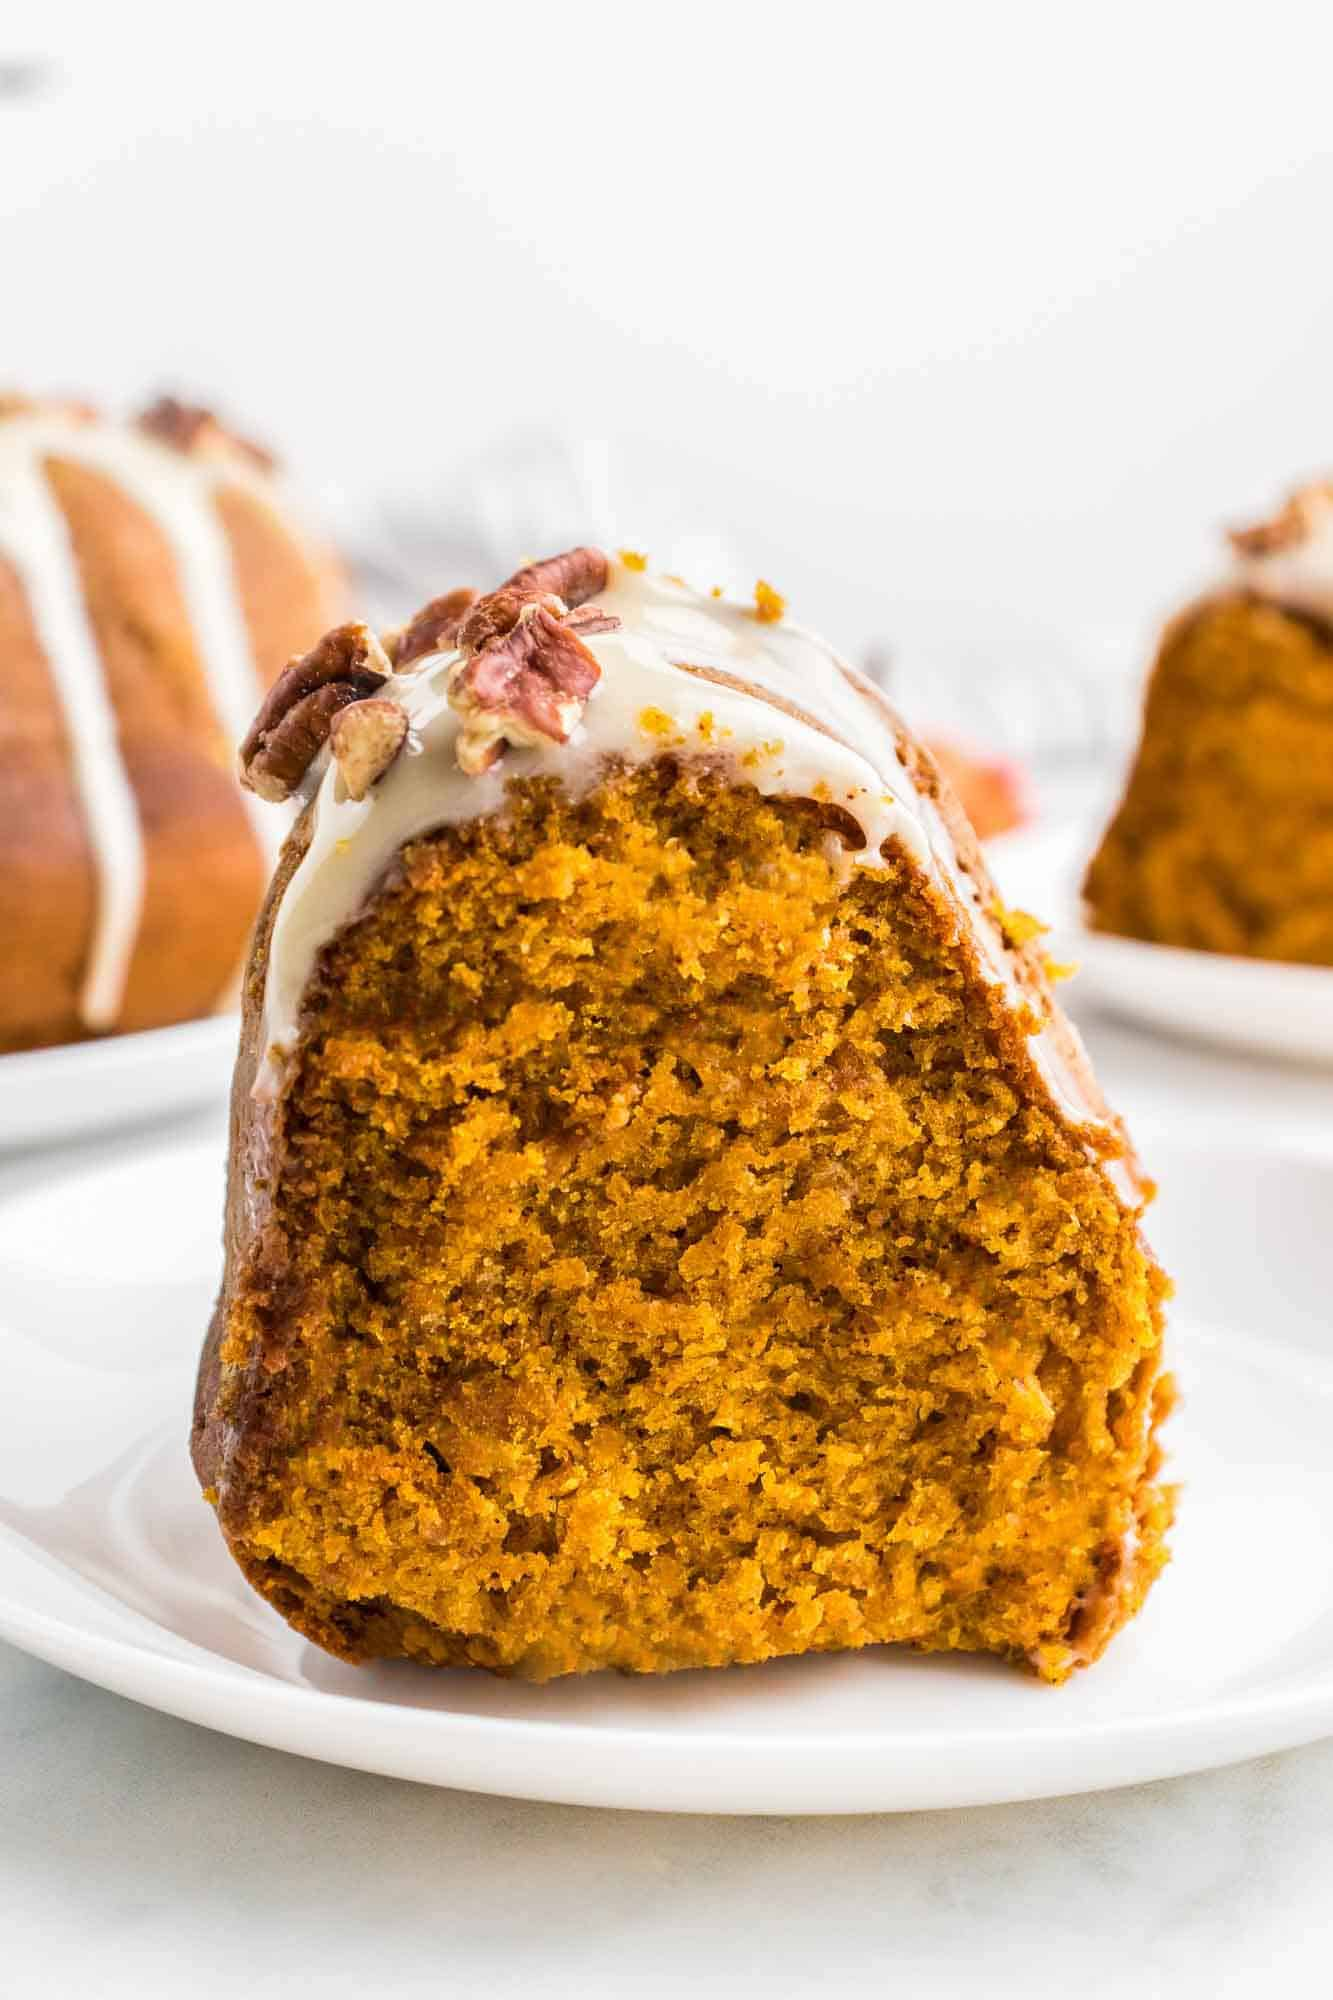 A slice of pumpkin bundt cake served on a small white plate